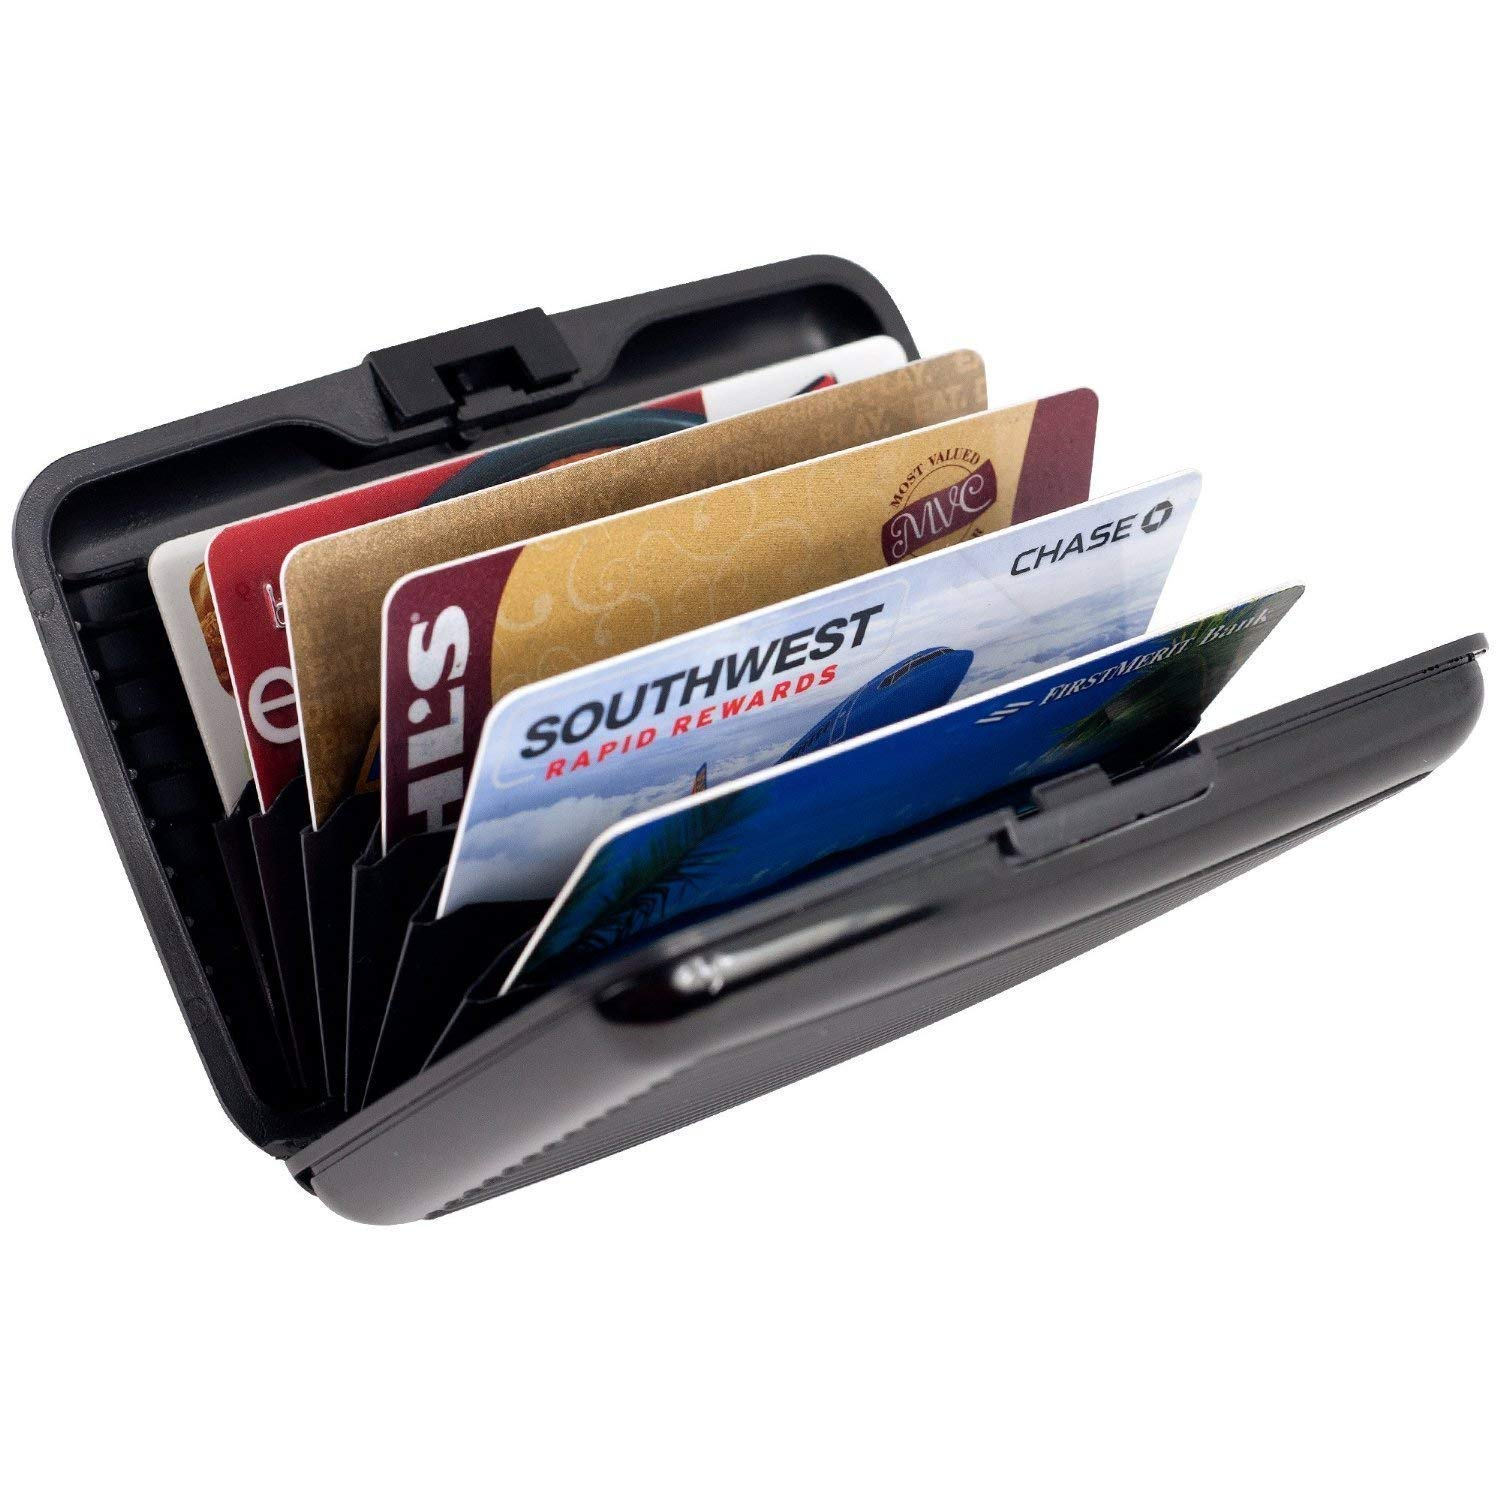 Aluminum Wallet Credit Card Holder With RFID Protection